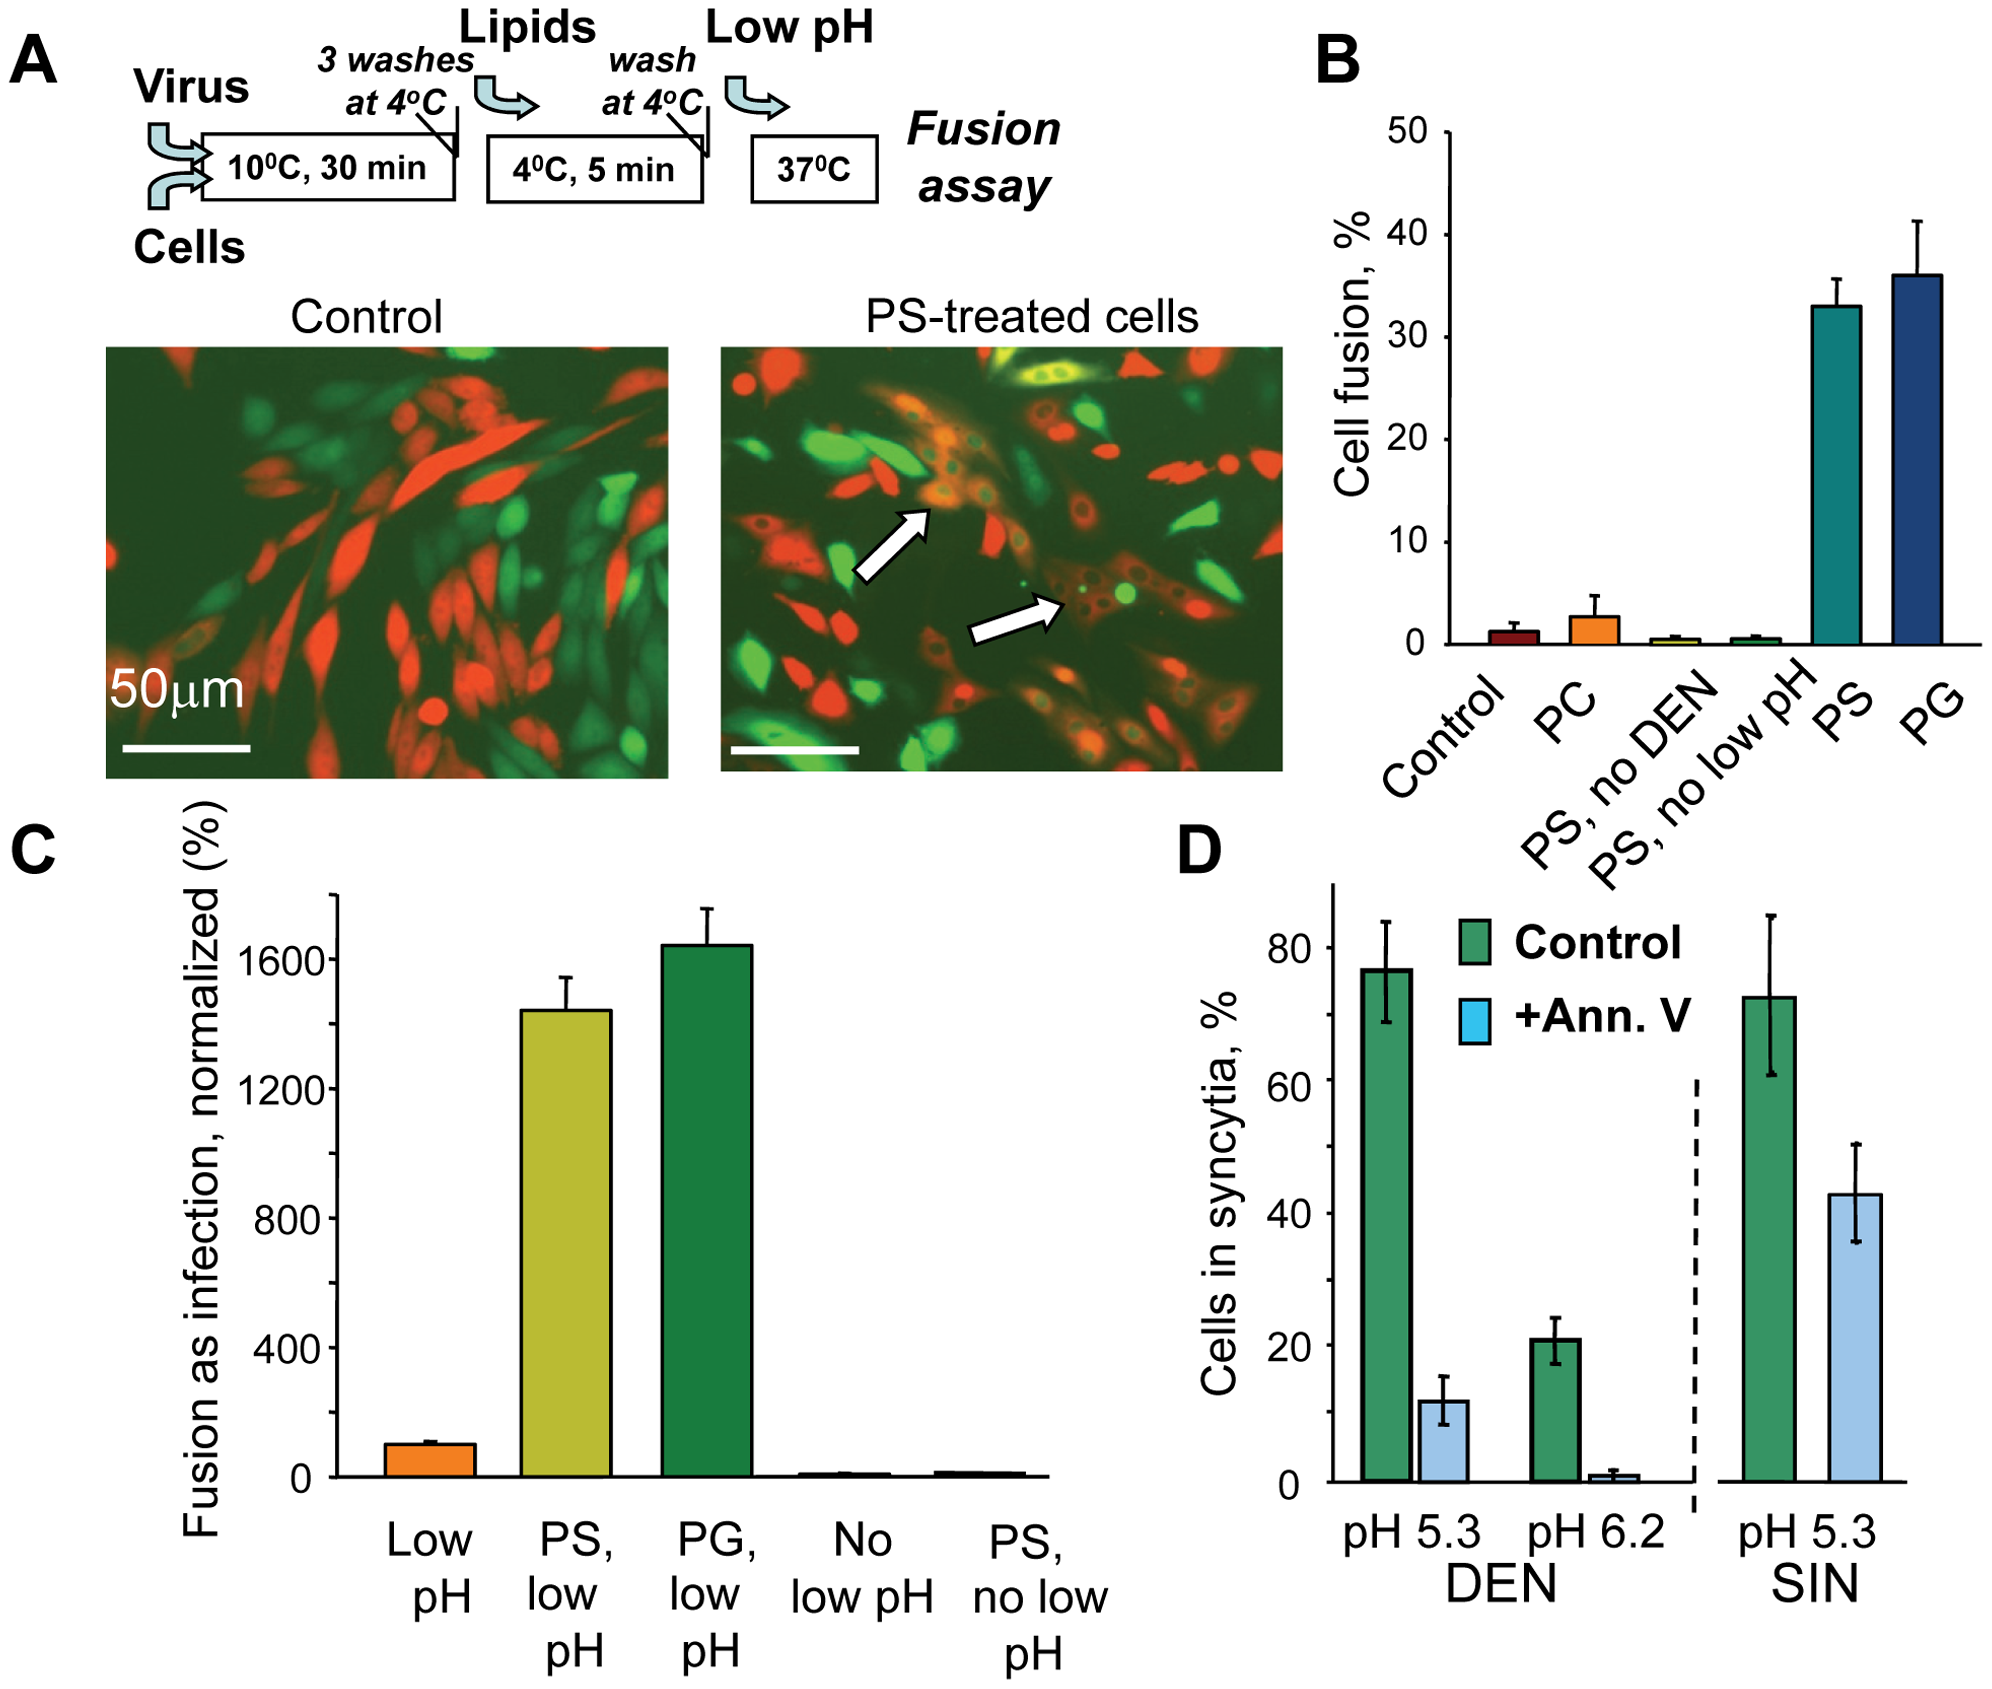 Anionic lipids promote DEN-mediated cell-to-cell fusion.